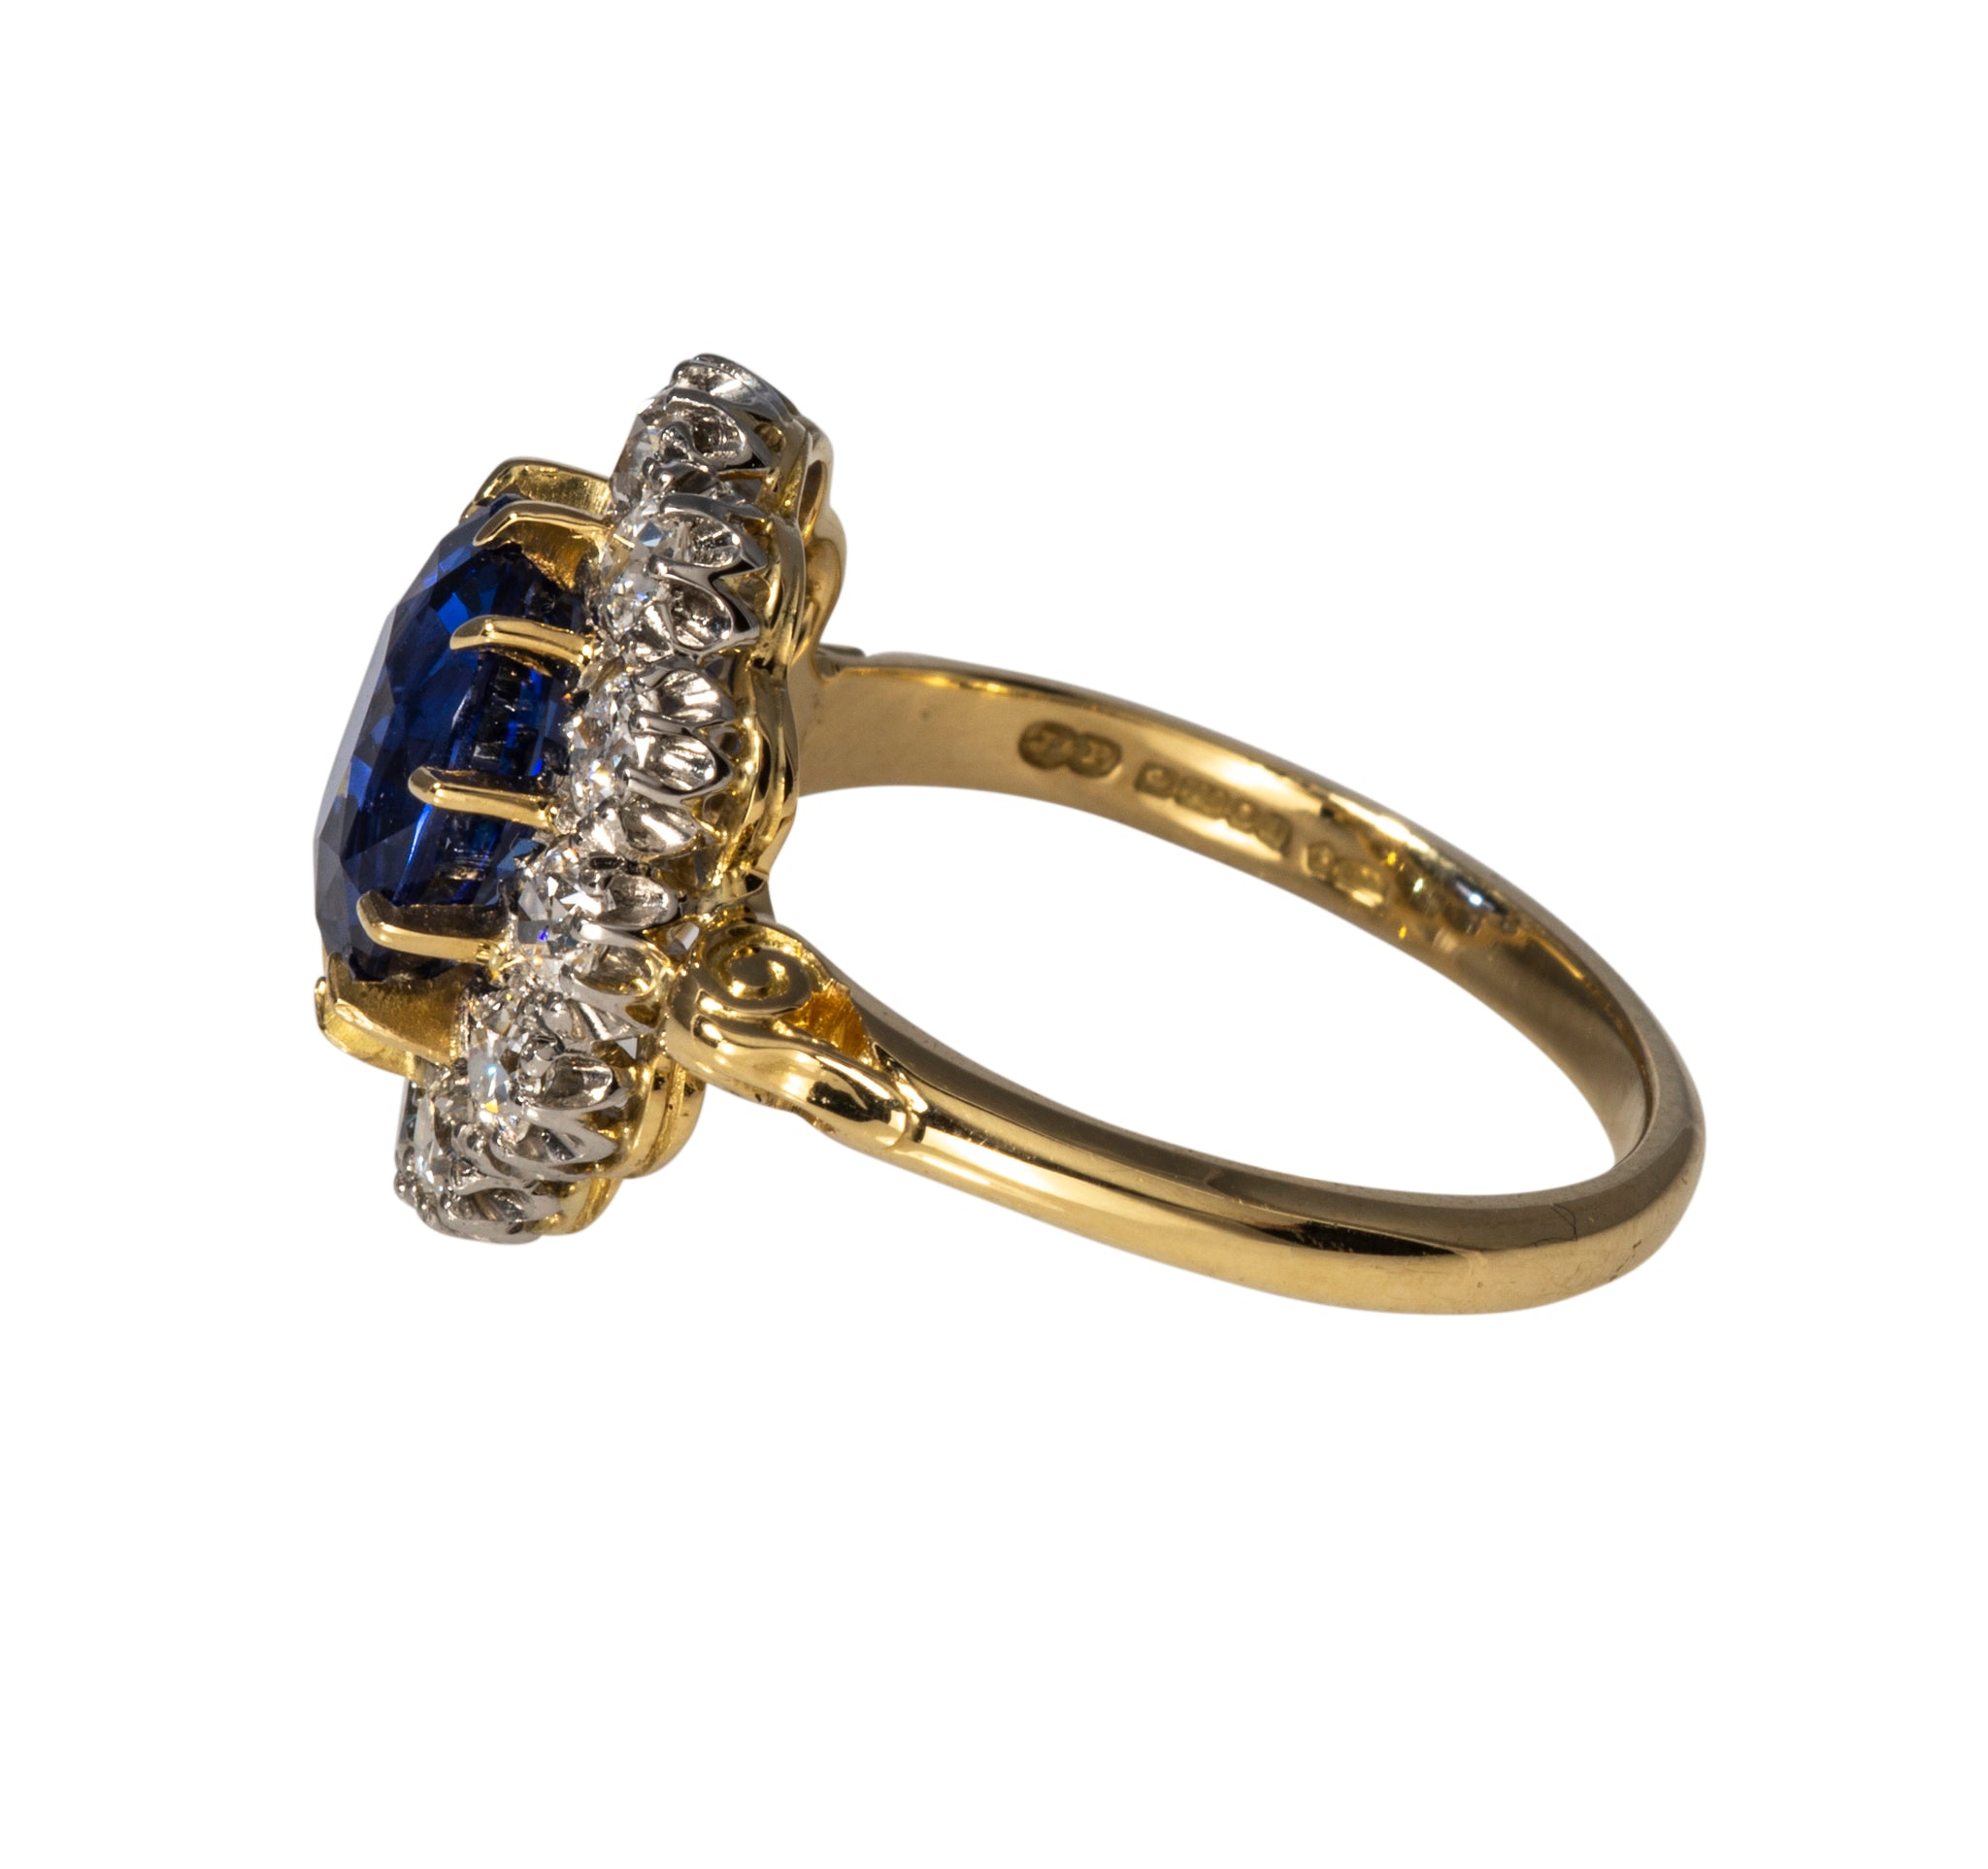 Victorian 3.16ct Sapphire & Diamond Halo Engagement Ring